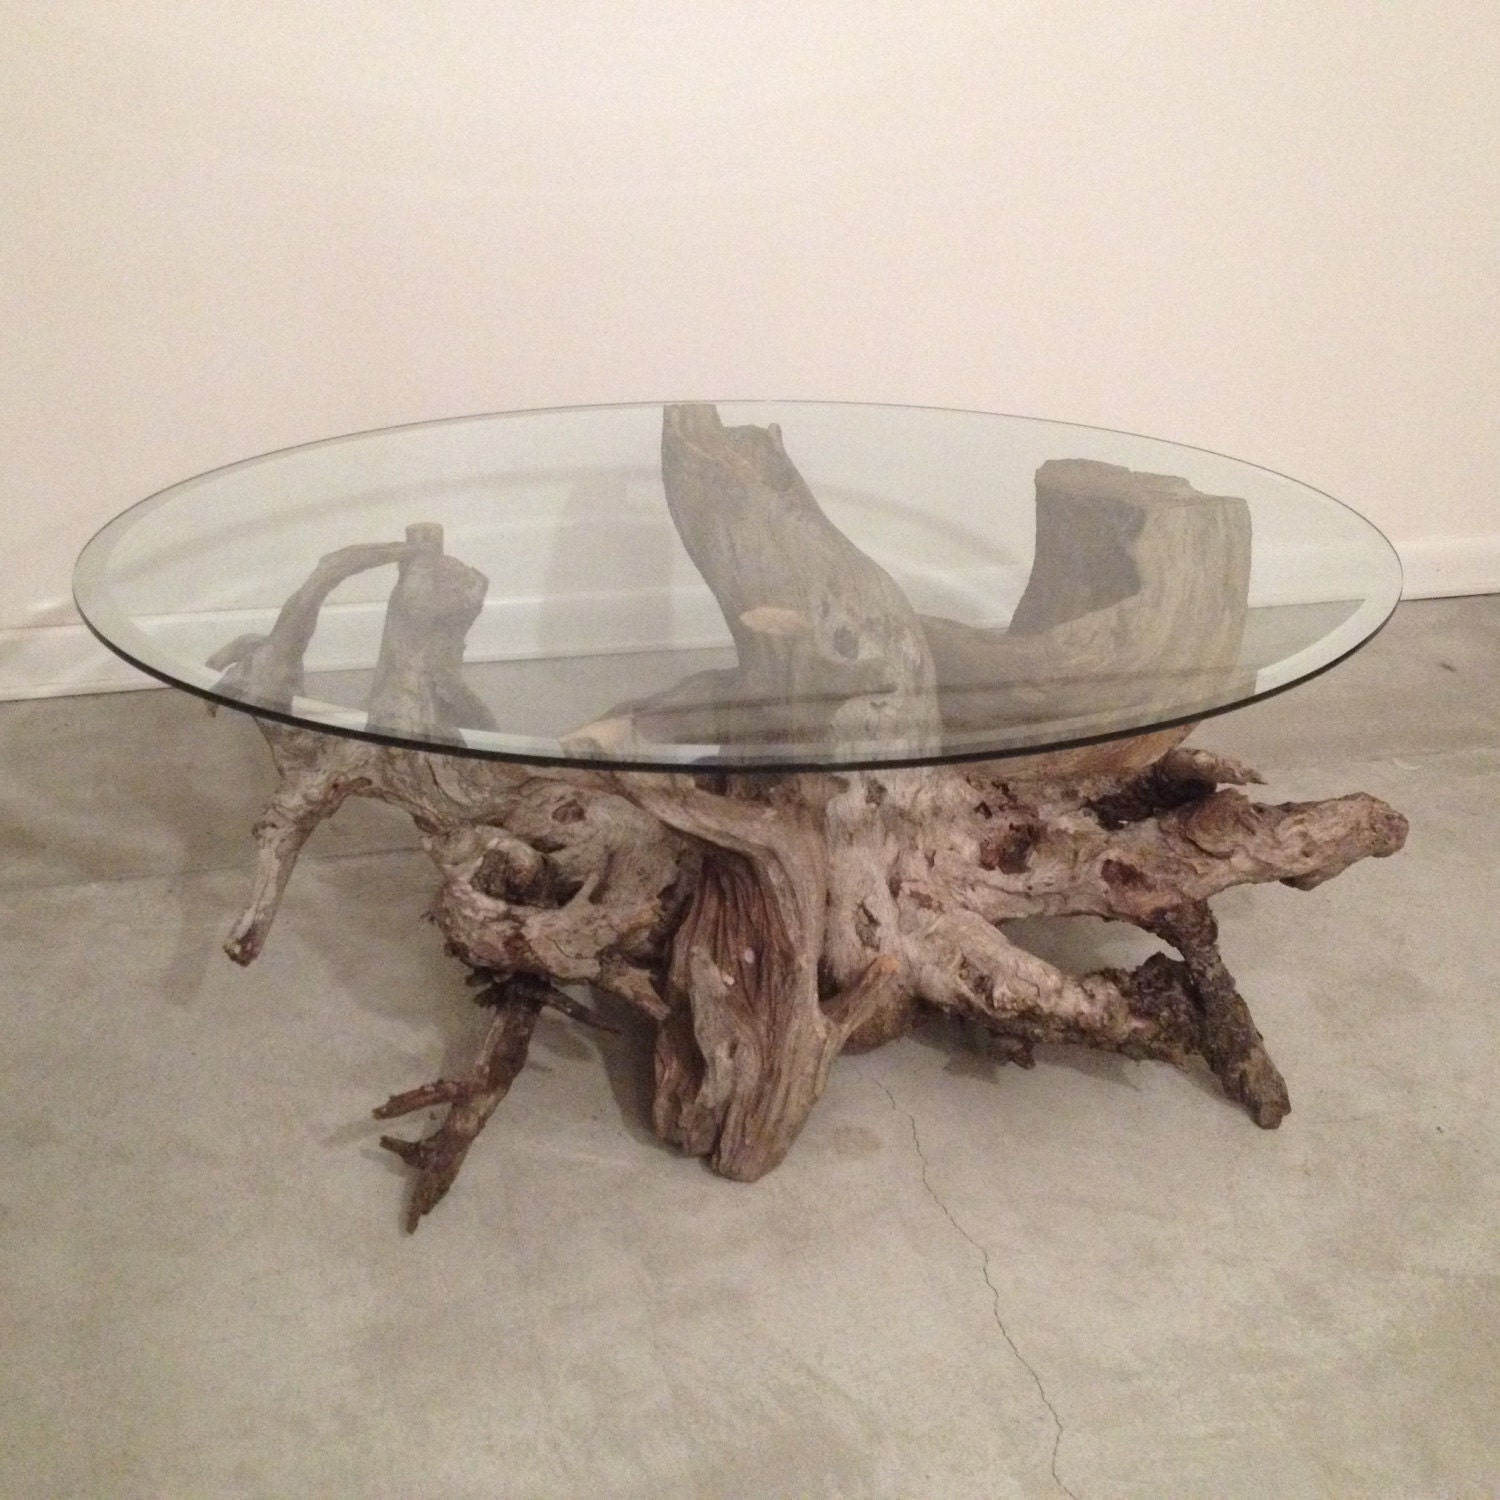 Driftwood Coffee Table. Style 4. Handmade From Reclaimed